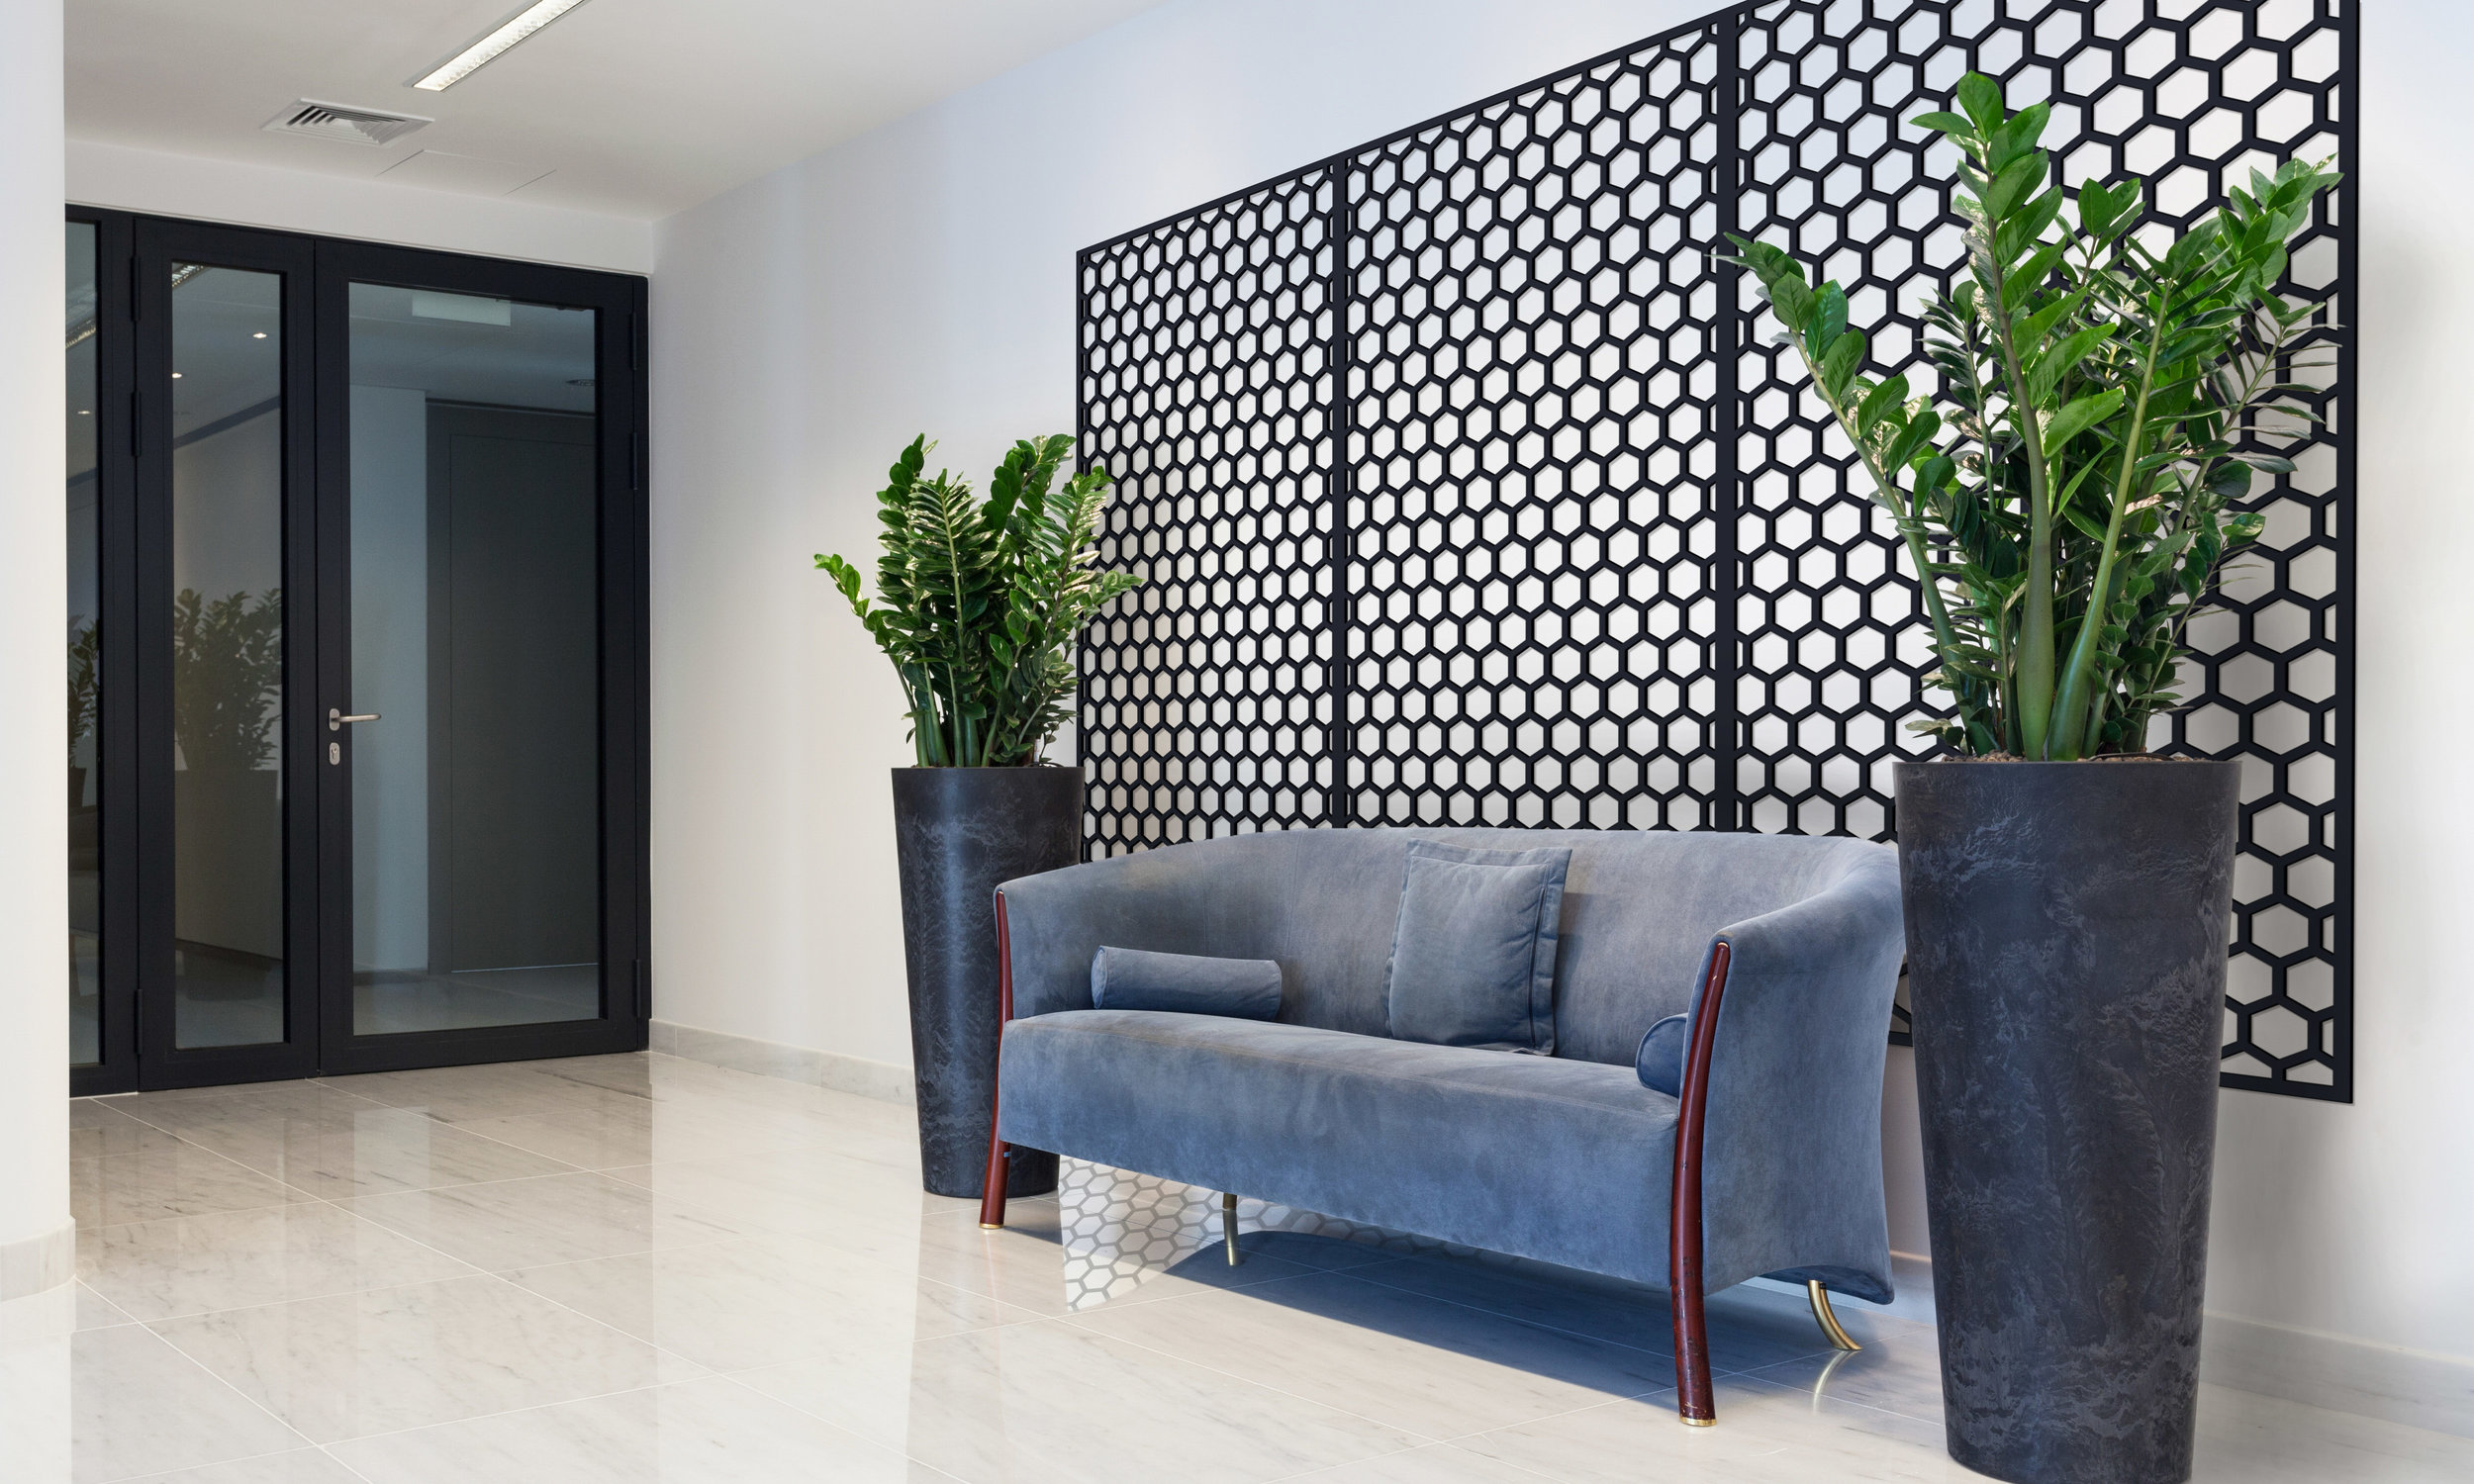 Installation Rendering B   Honeycomb decorative office wall panel - painted